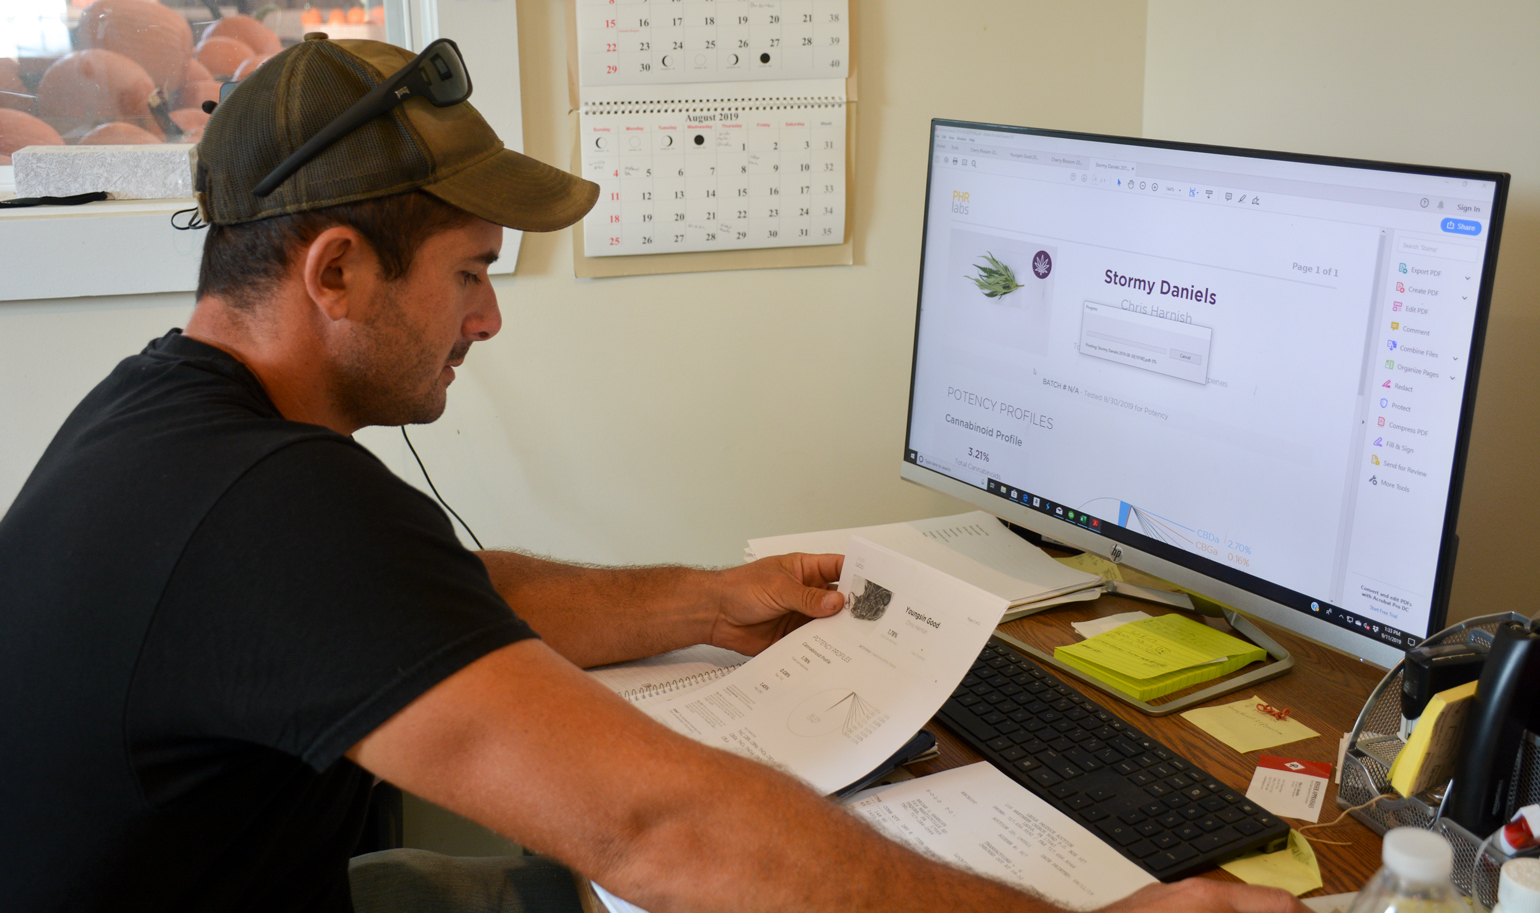 Bryan Harnish reviews test results for THC and CBD levels at his computer